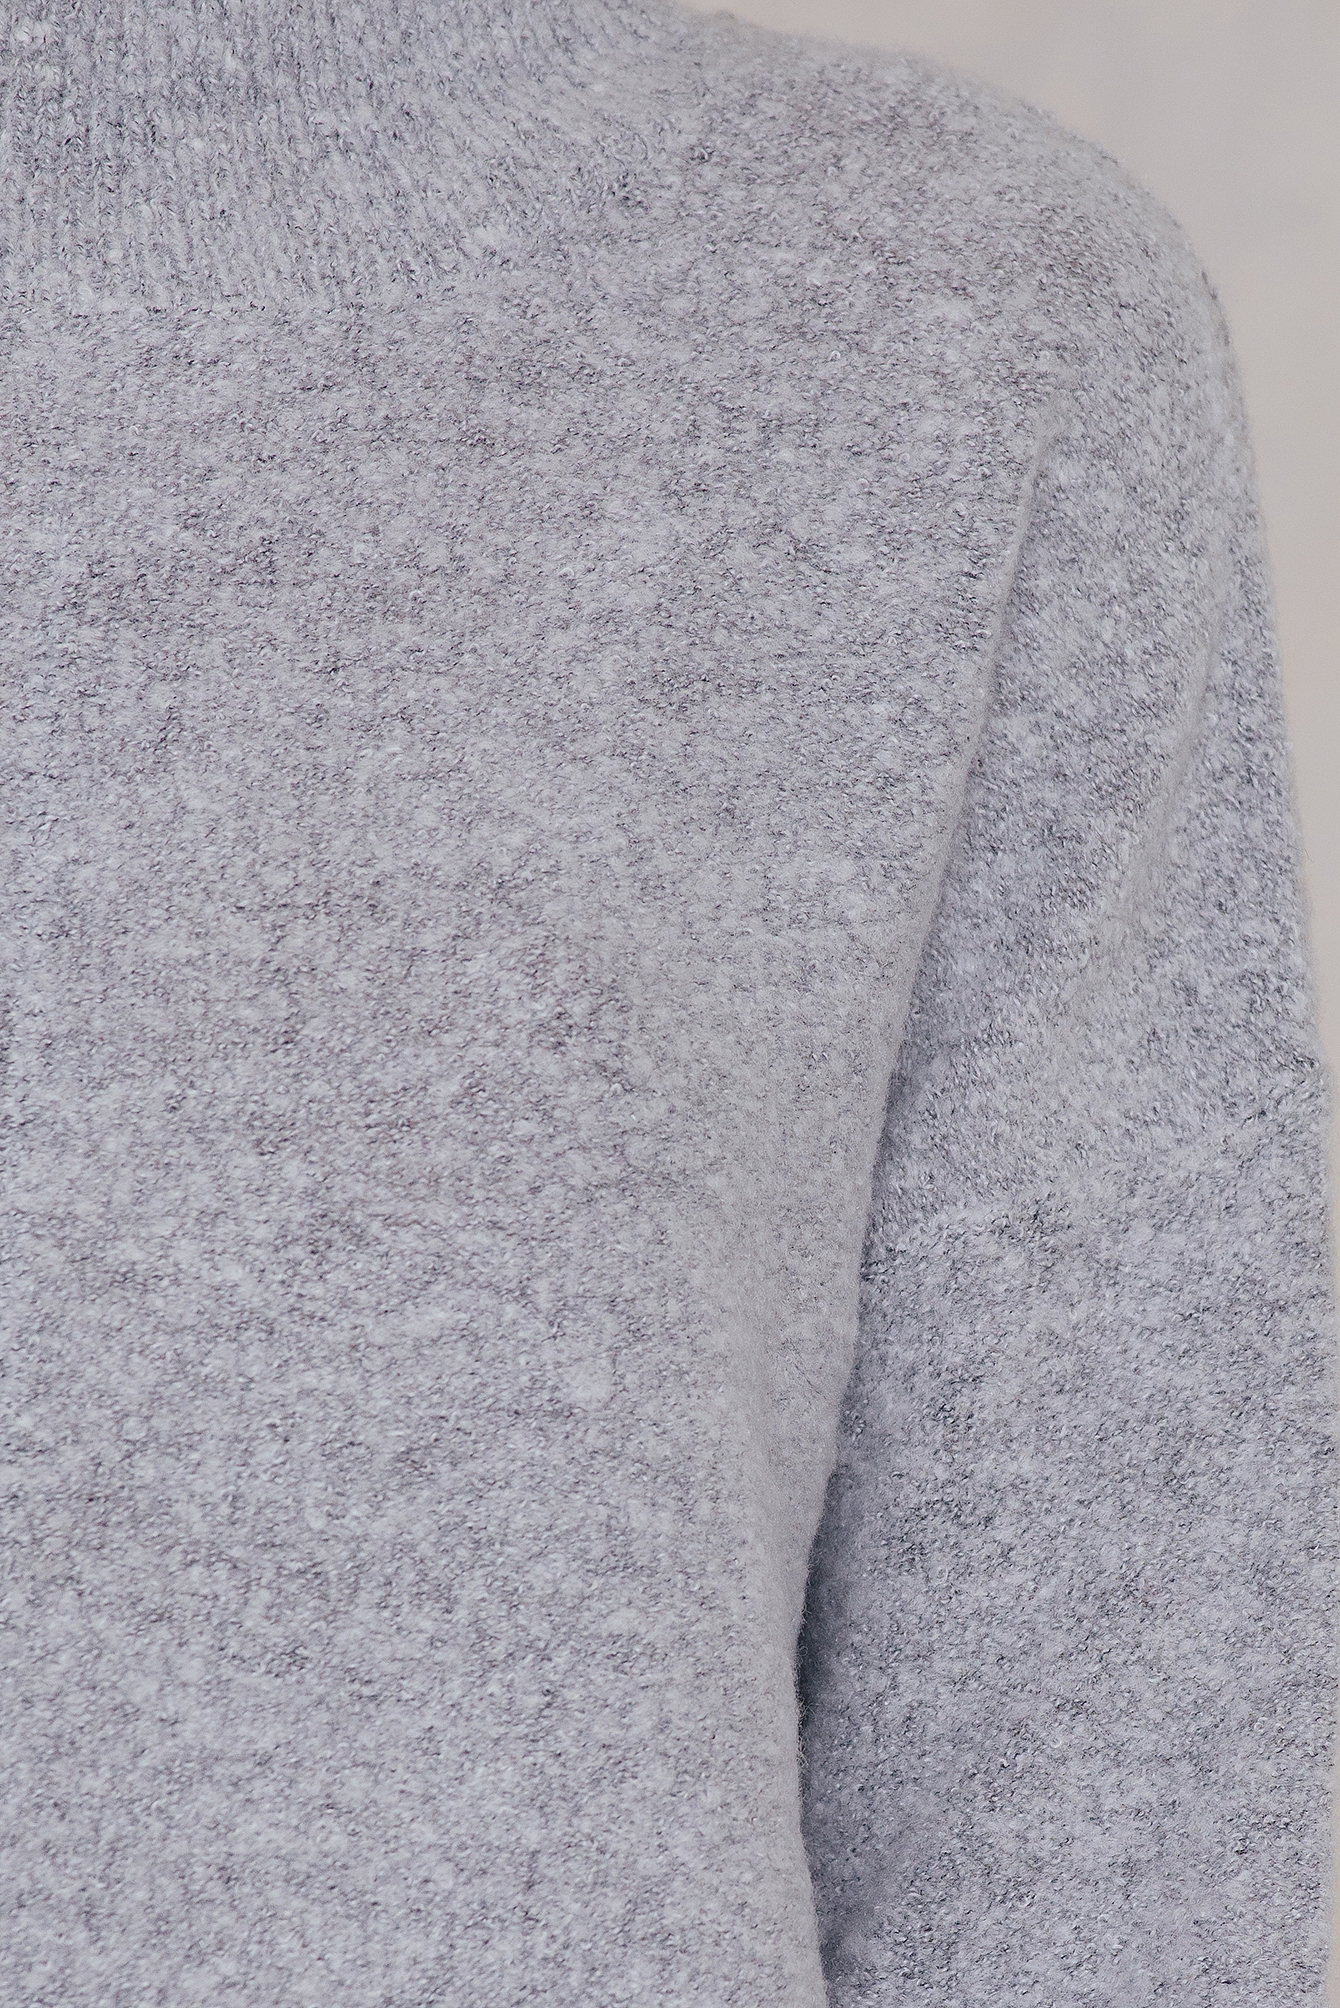 LT Grey Erica Knit